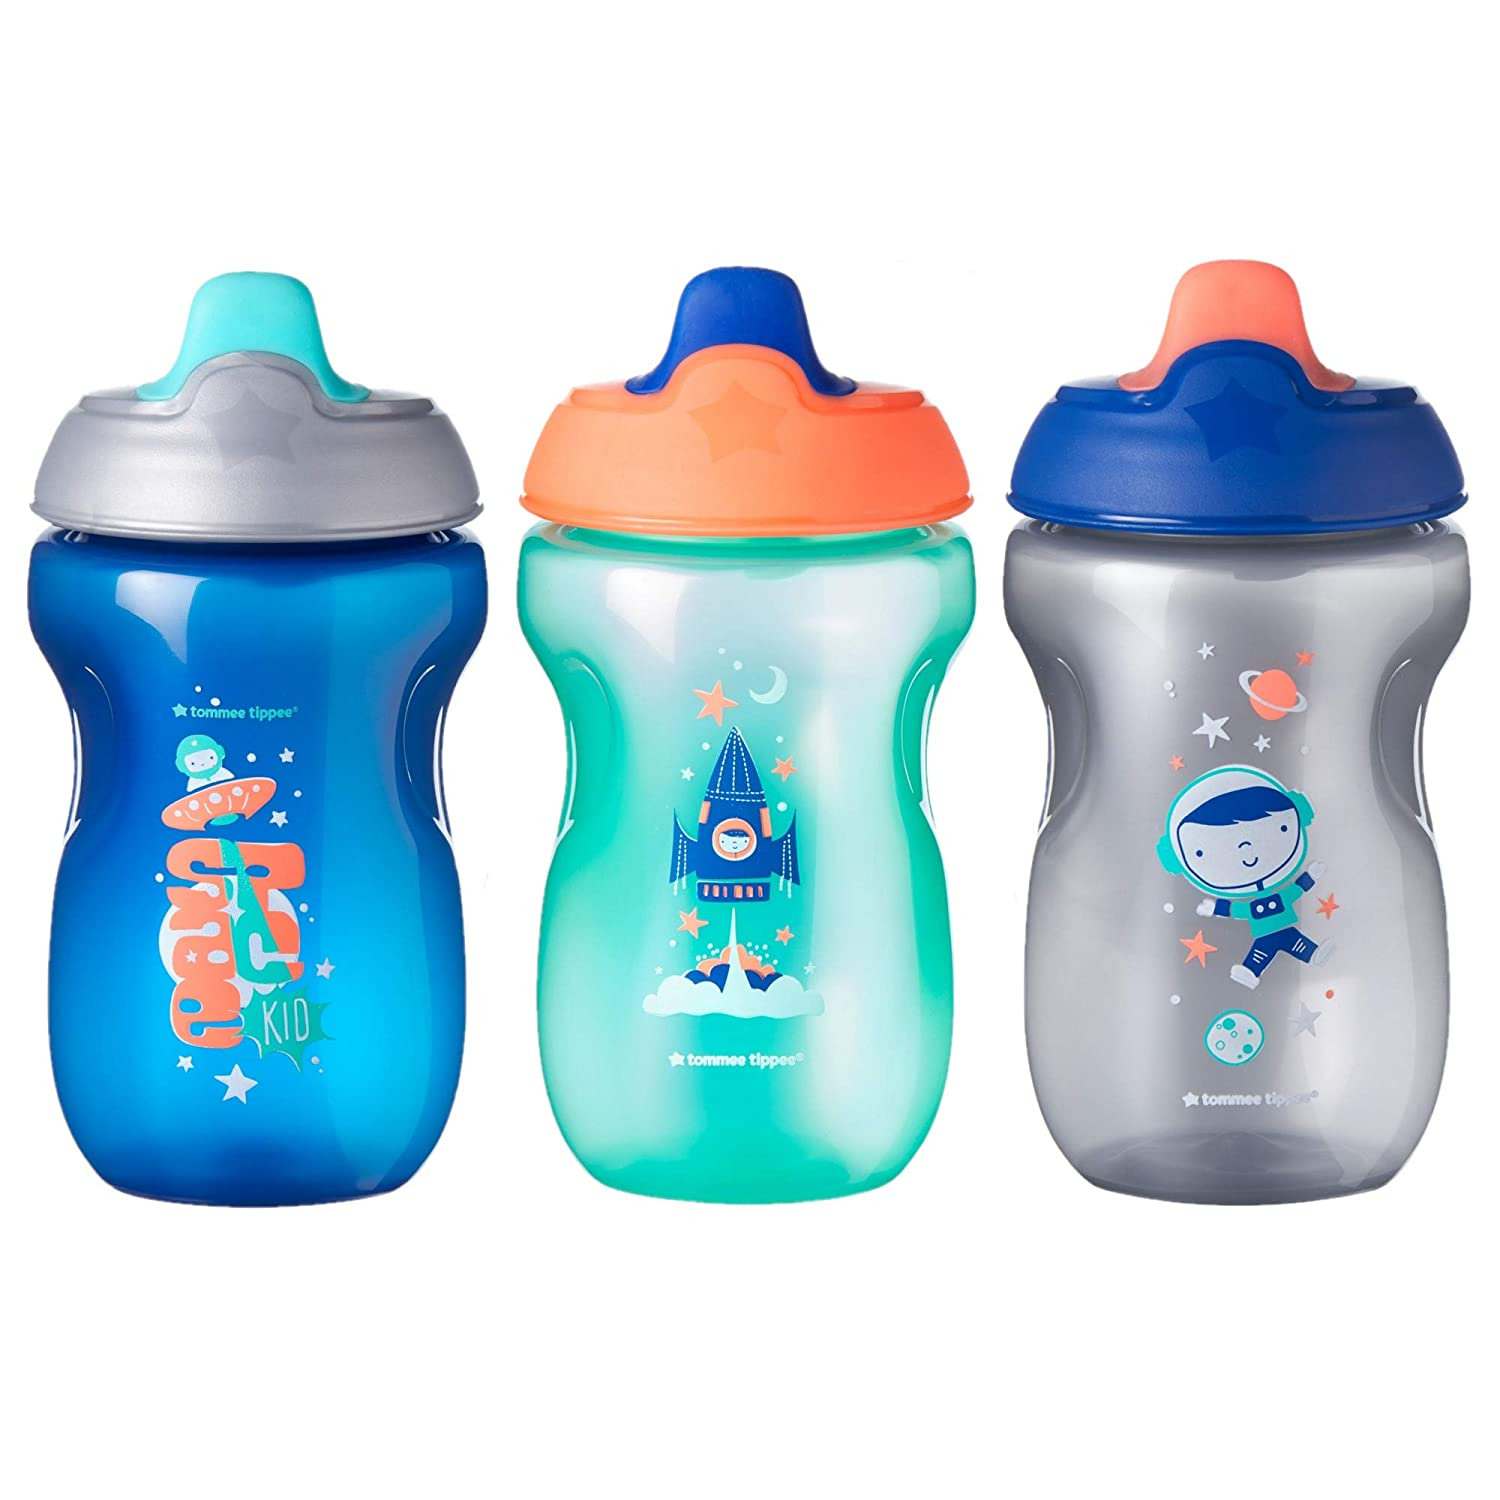 Tommee Tippee Non-Spill Toddler Sippee Cup Oakland Mall 3 Oz 10 Max 86% OFF 9+ Months